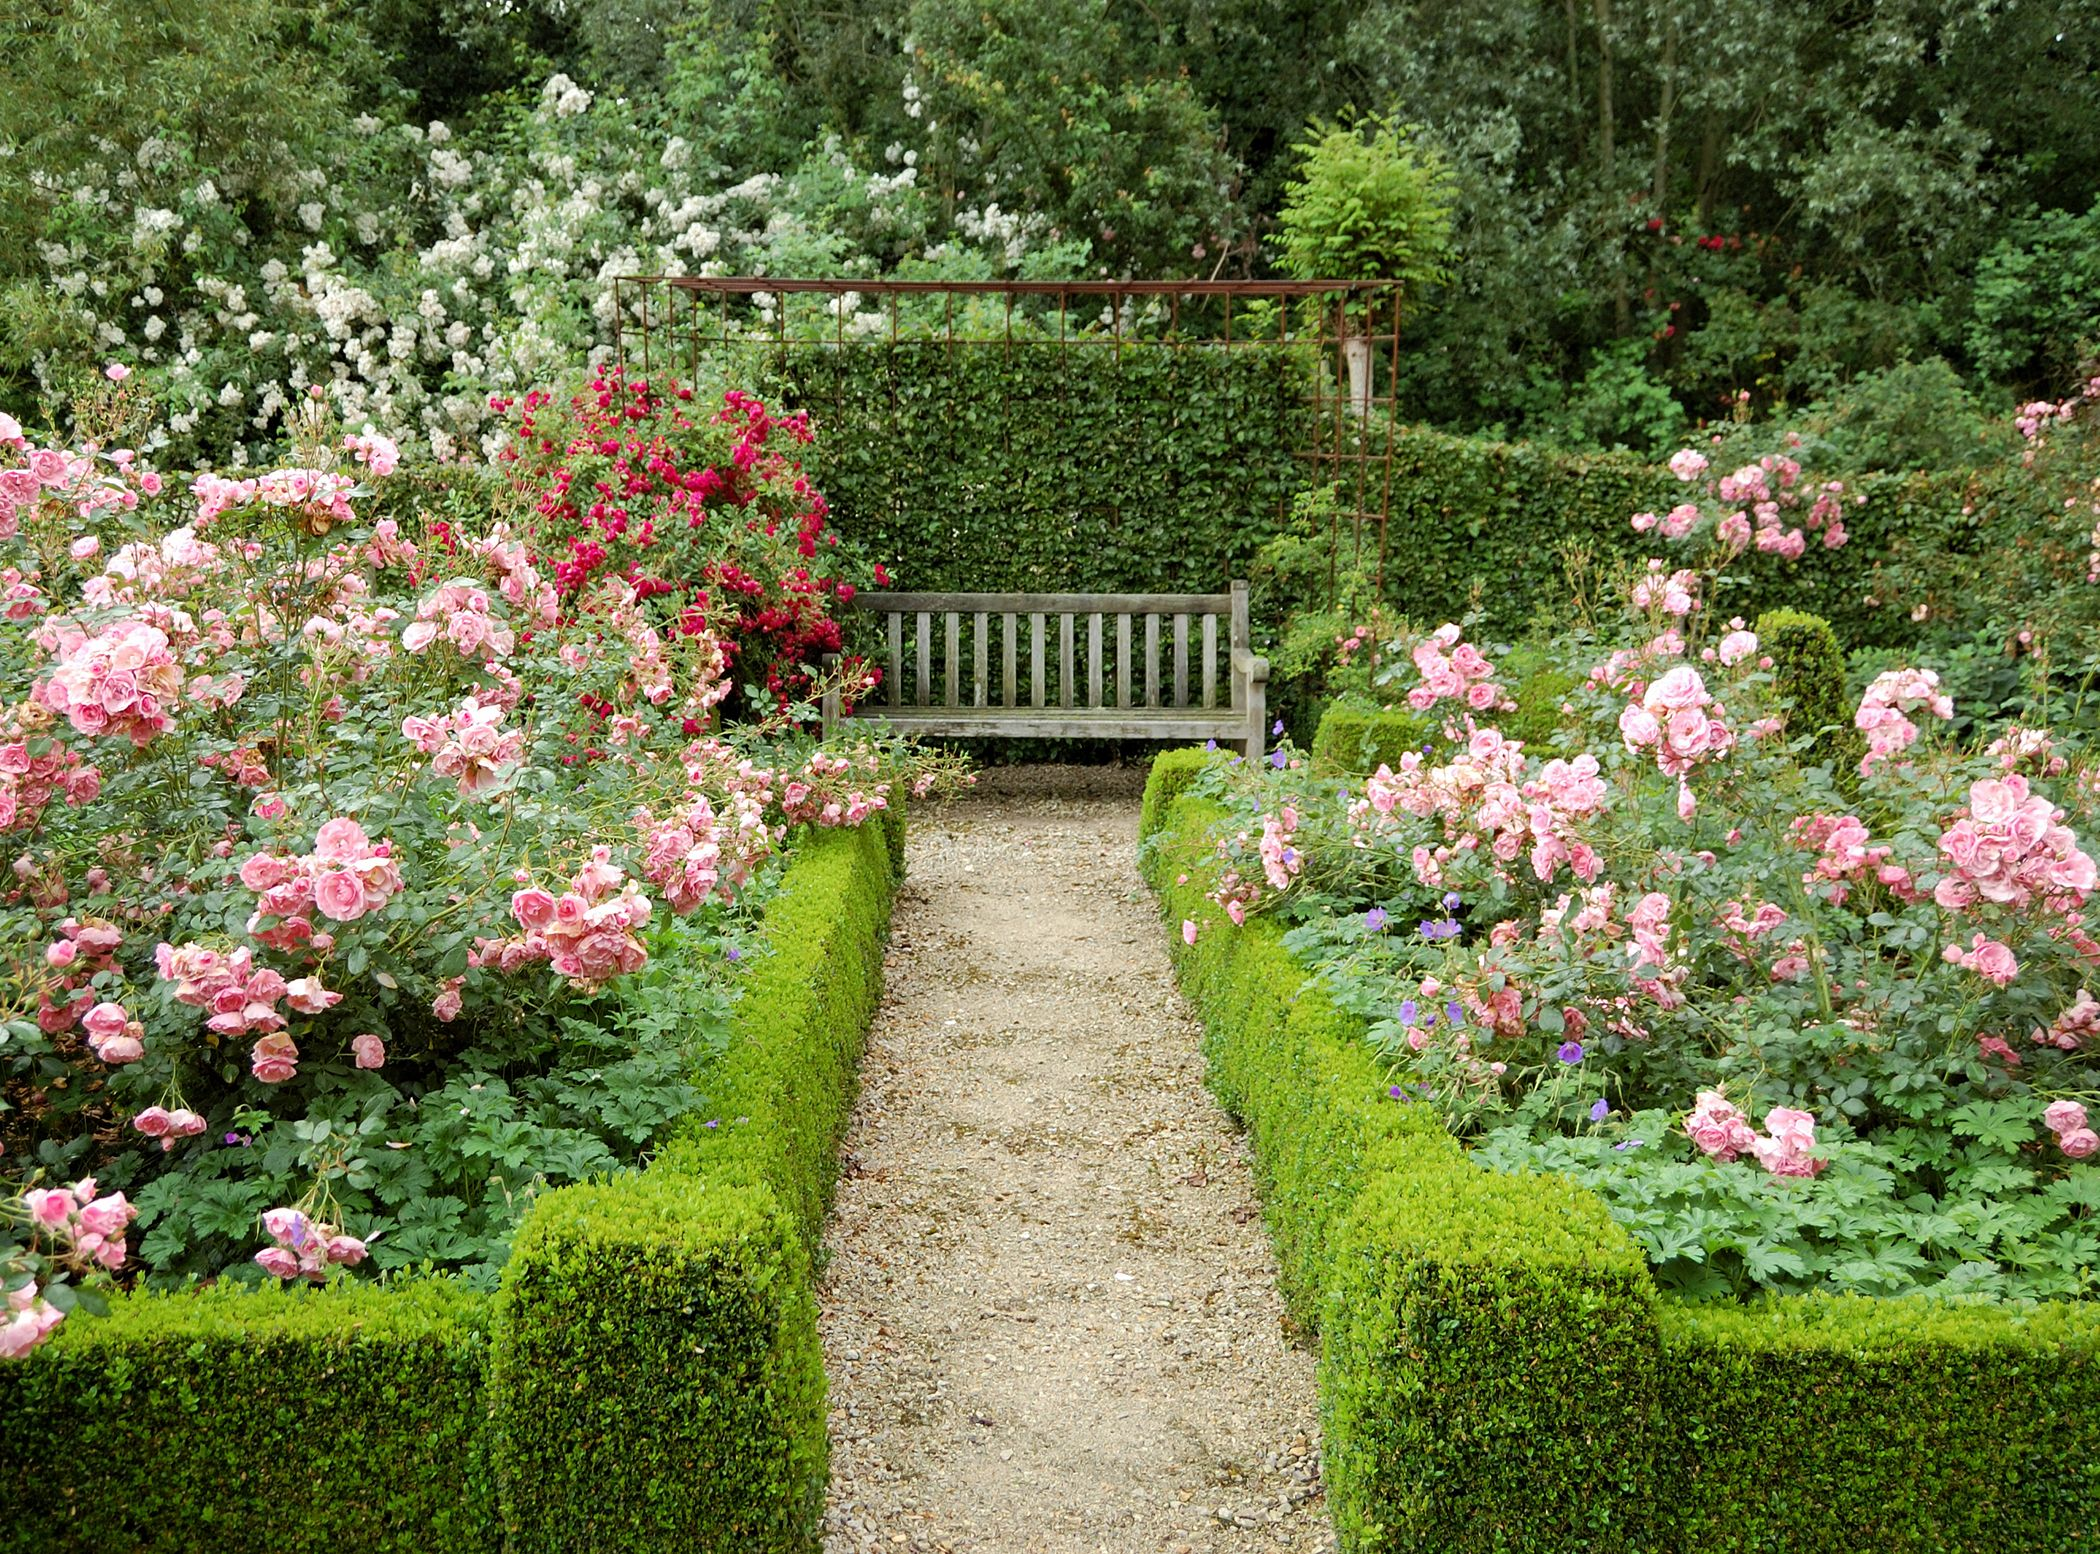 Garten Design Online Shop 10 English Garden Design Ideas How To Make An English Garden